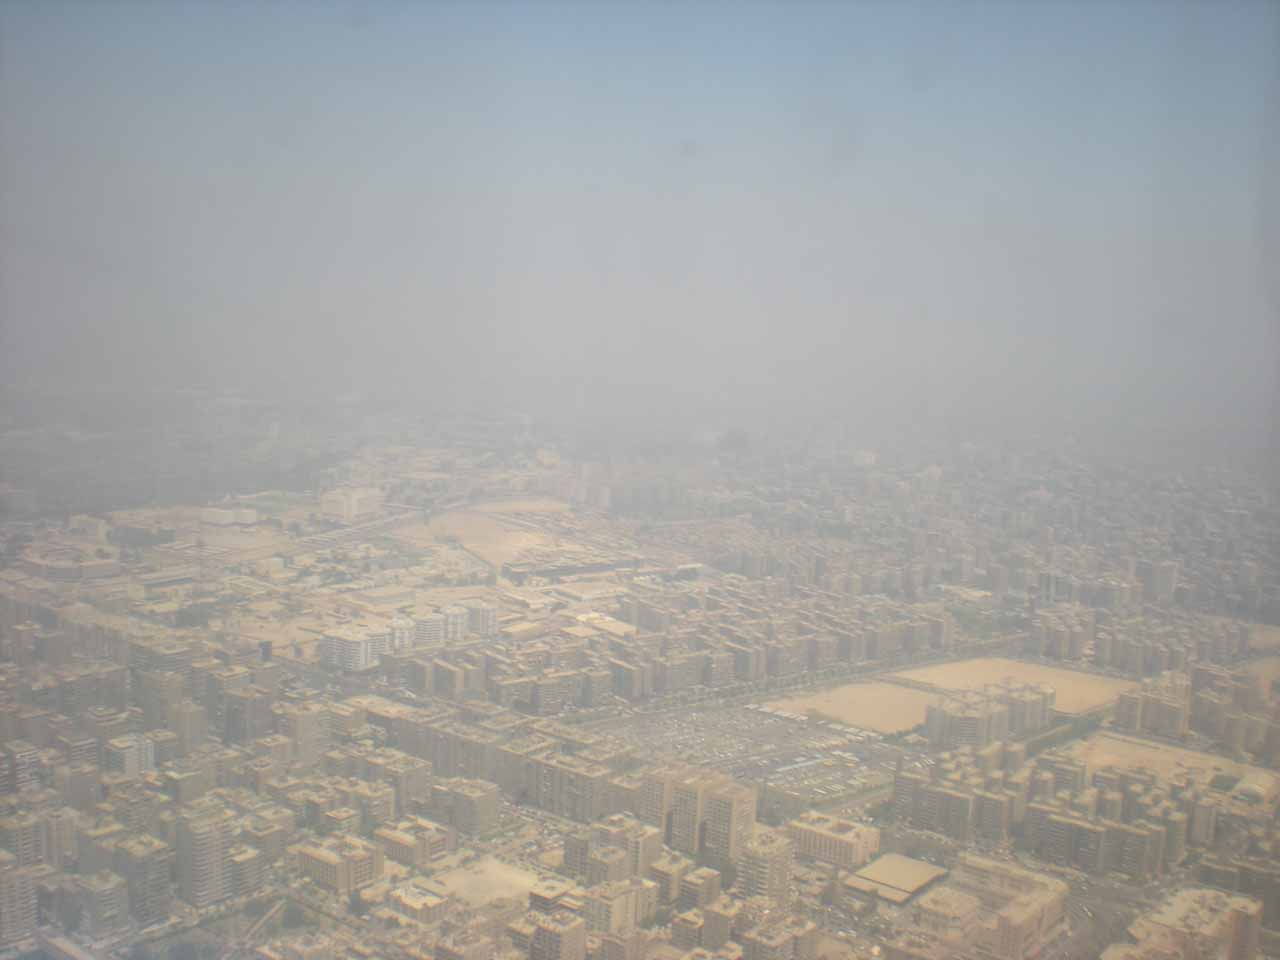 Re-entering smoggy Cairo airspace